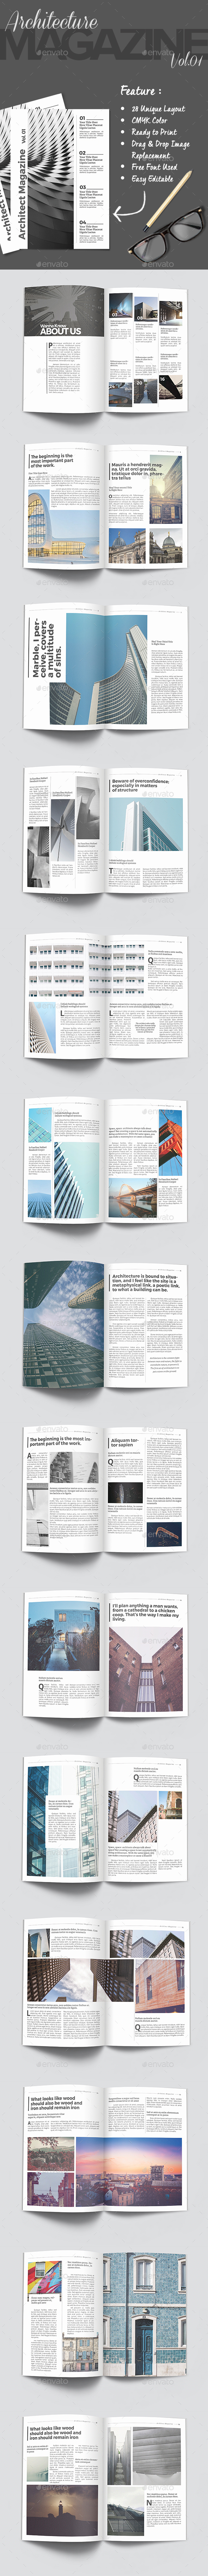 Architecture Magazine Vol.01 - Magazines Print Templates